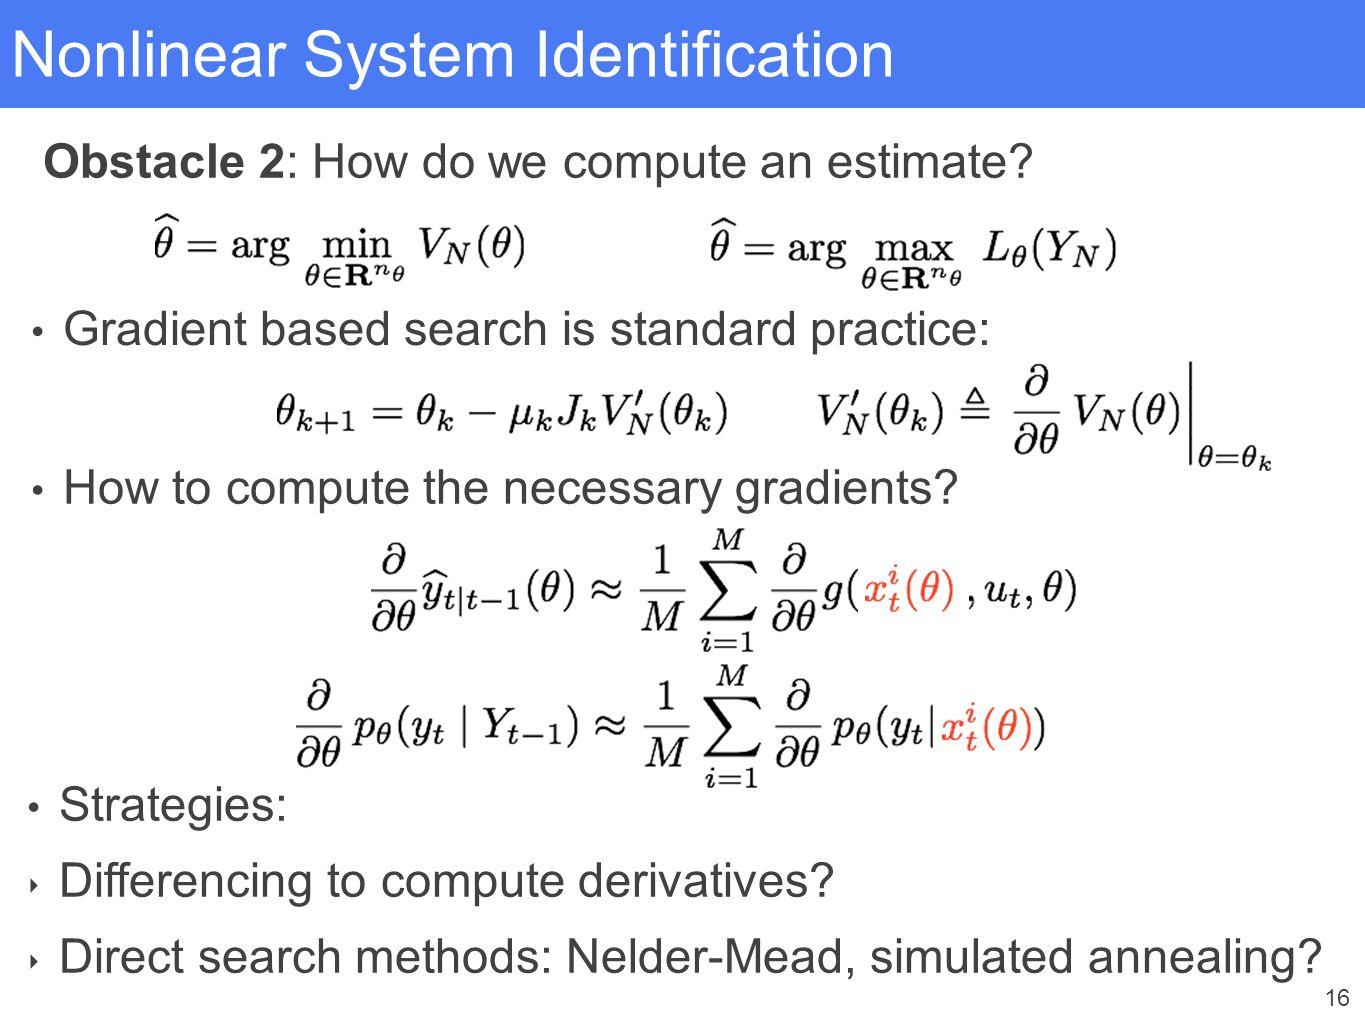 16 Nonlinear System Identification How to compute the necessary gradients? Strategies: ‣ Differencing to compute derivatives? ‣ Direct search methods: